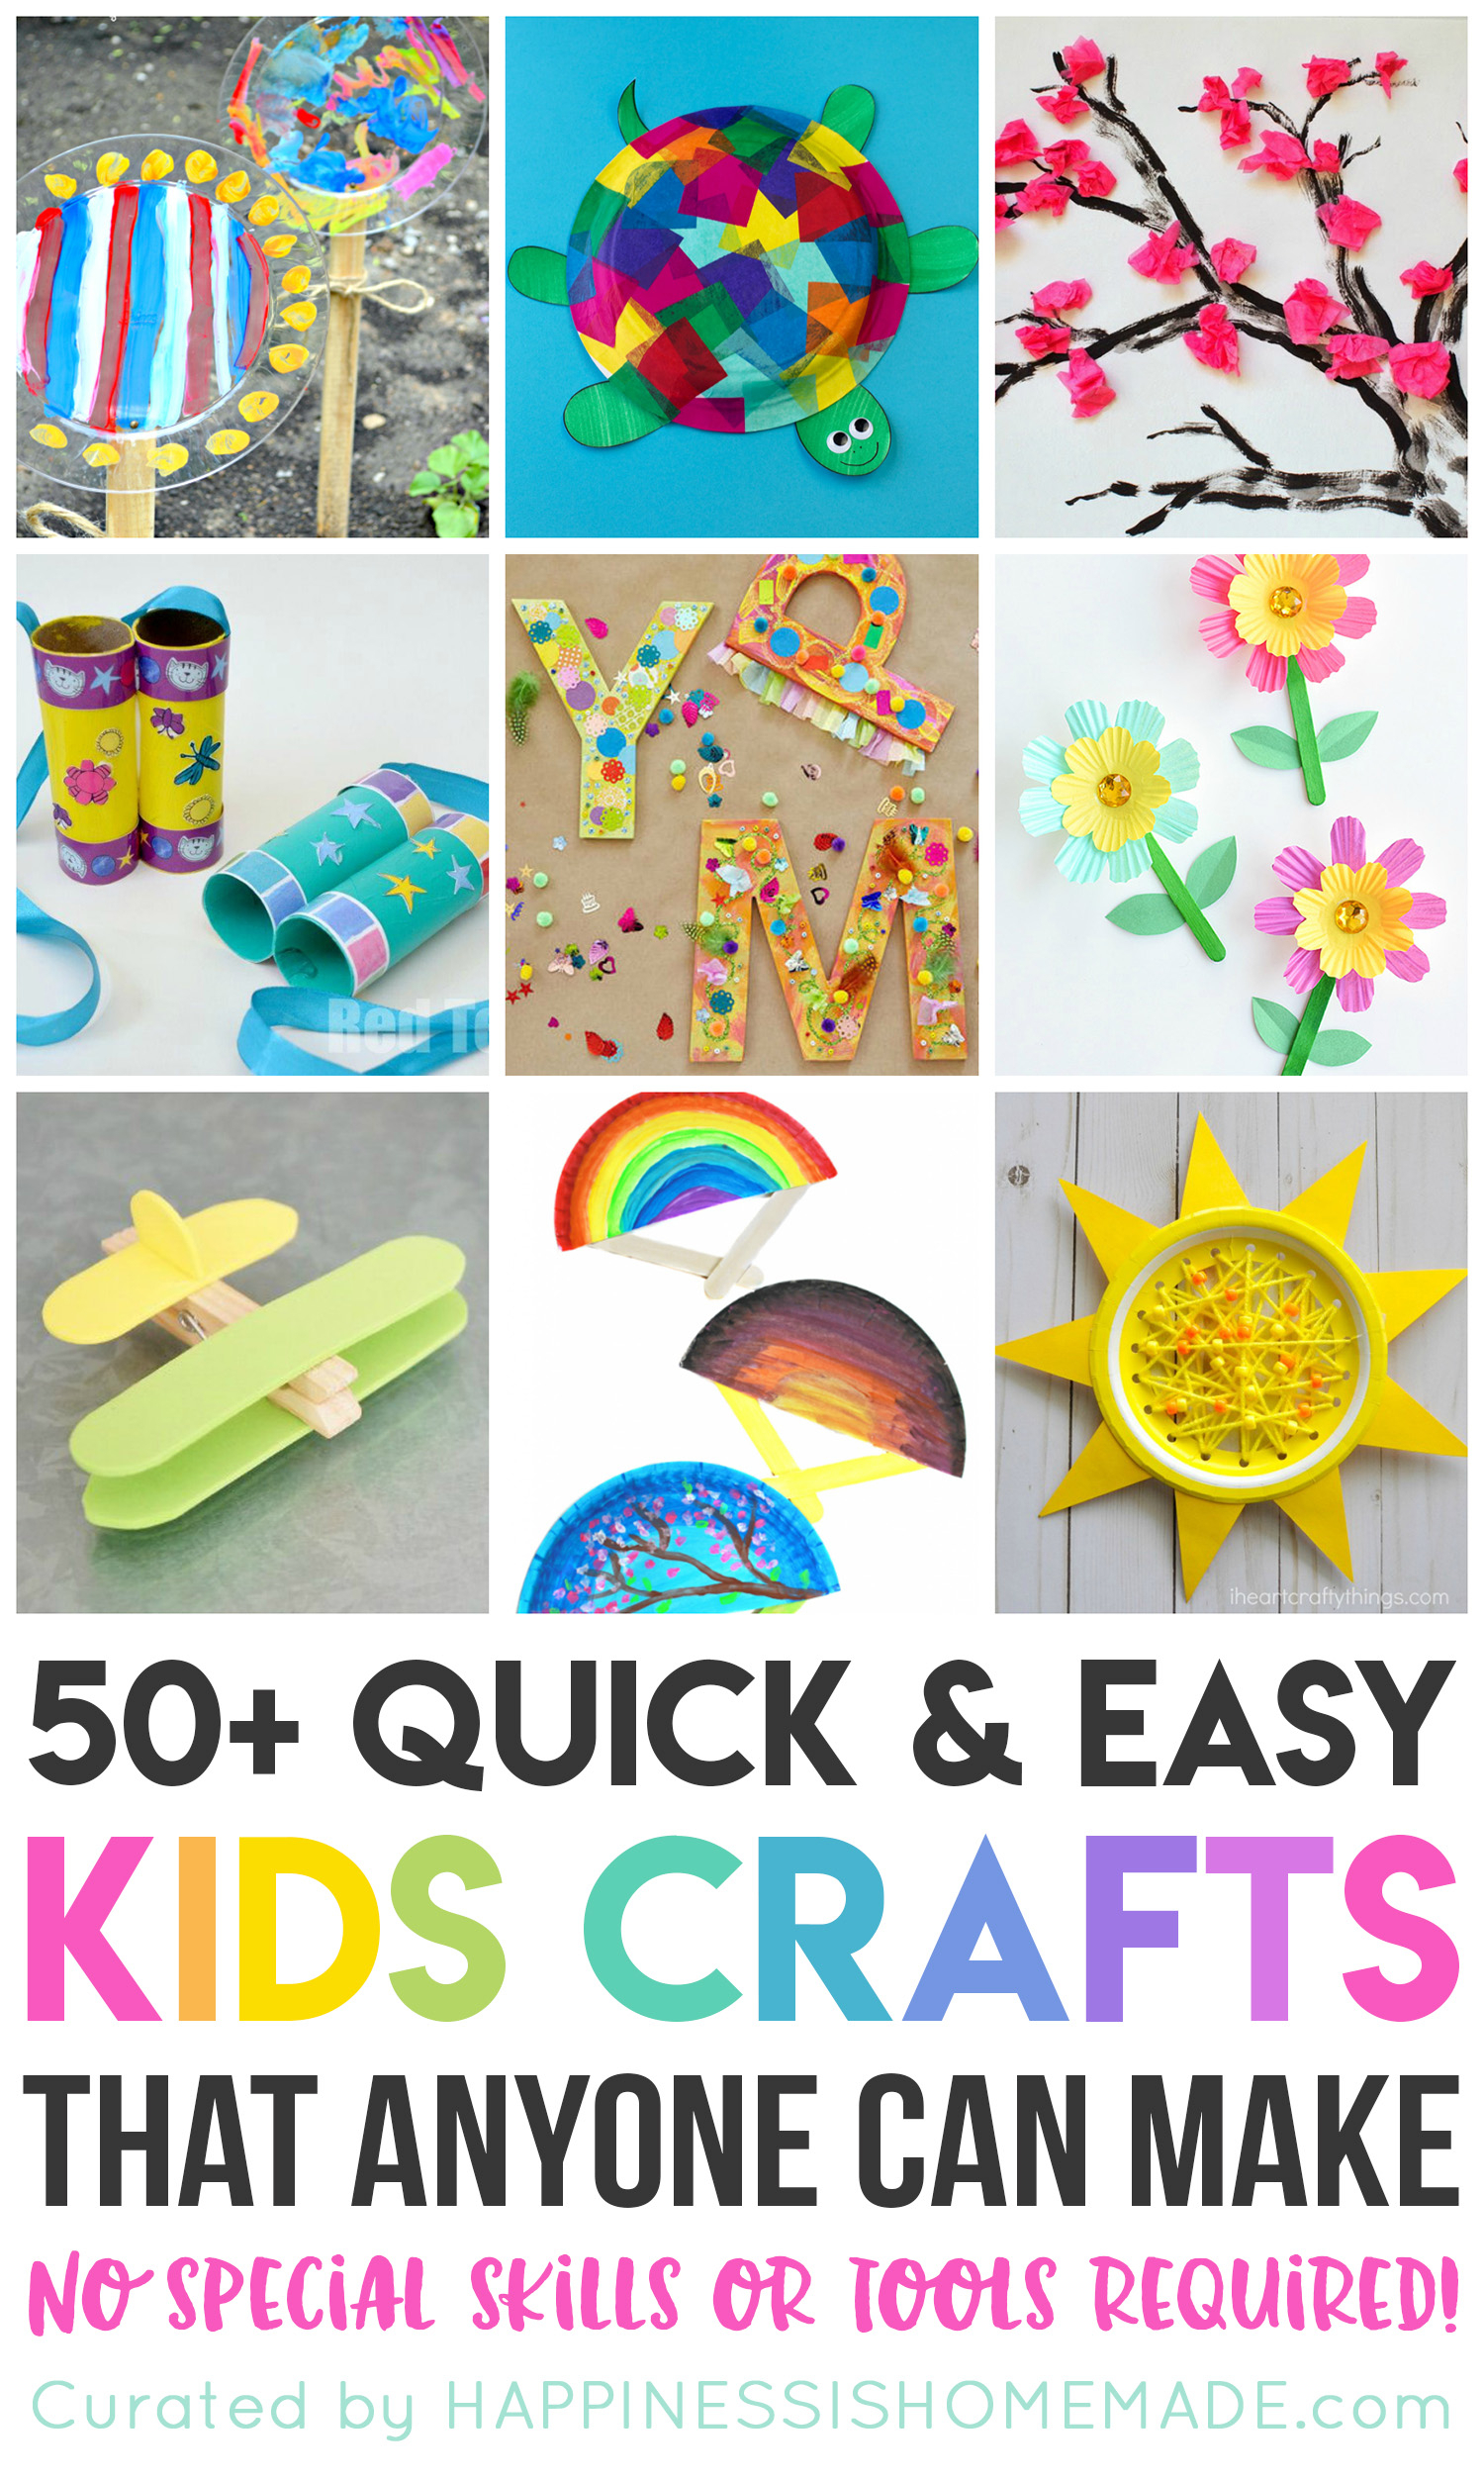 10 Great Easy Arts And Craft Ideas 50 quick easy kids crafts that anyone can make happiness is 2021